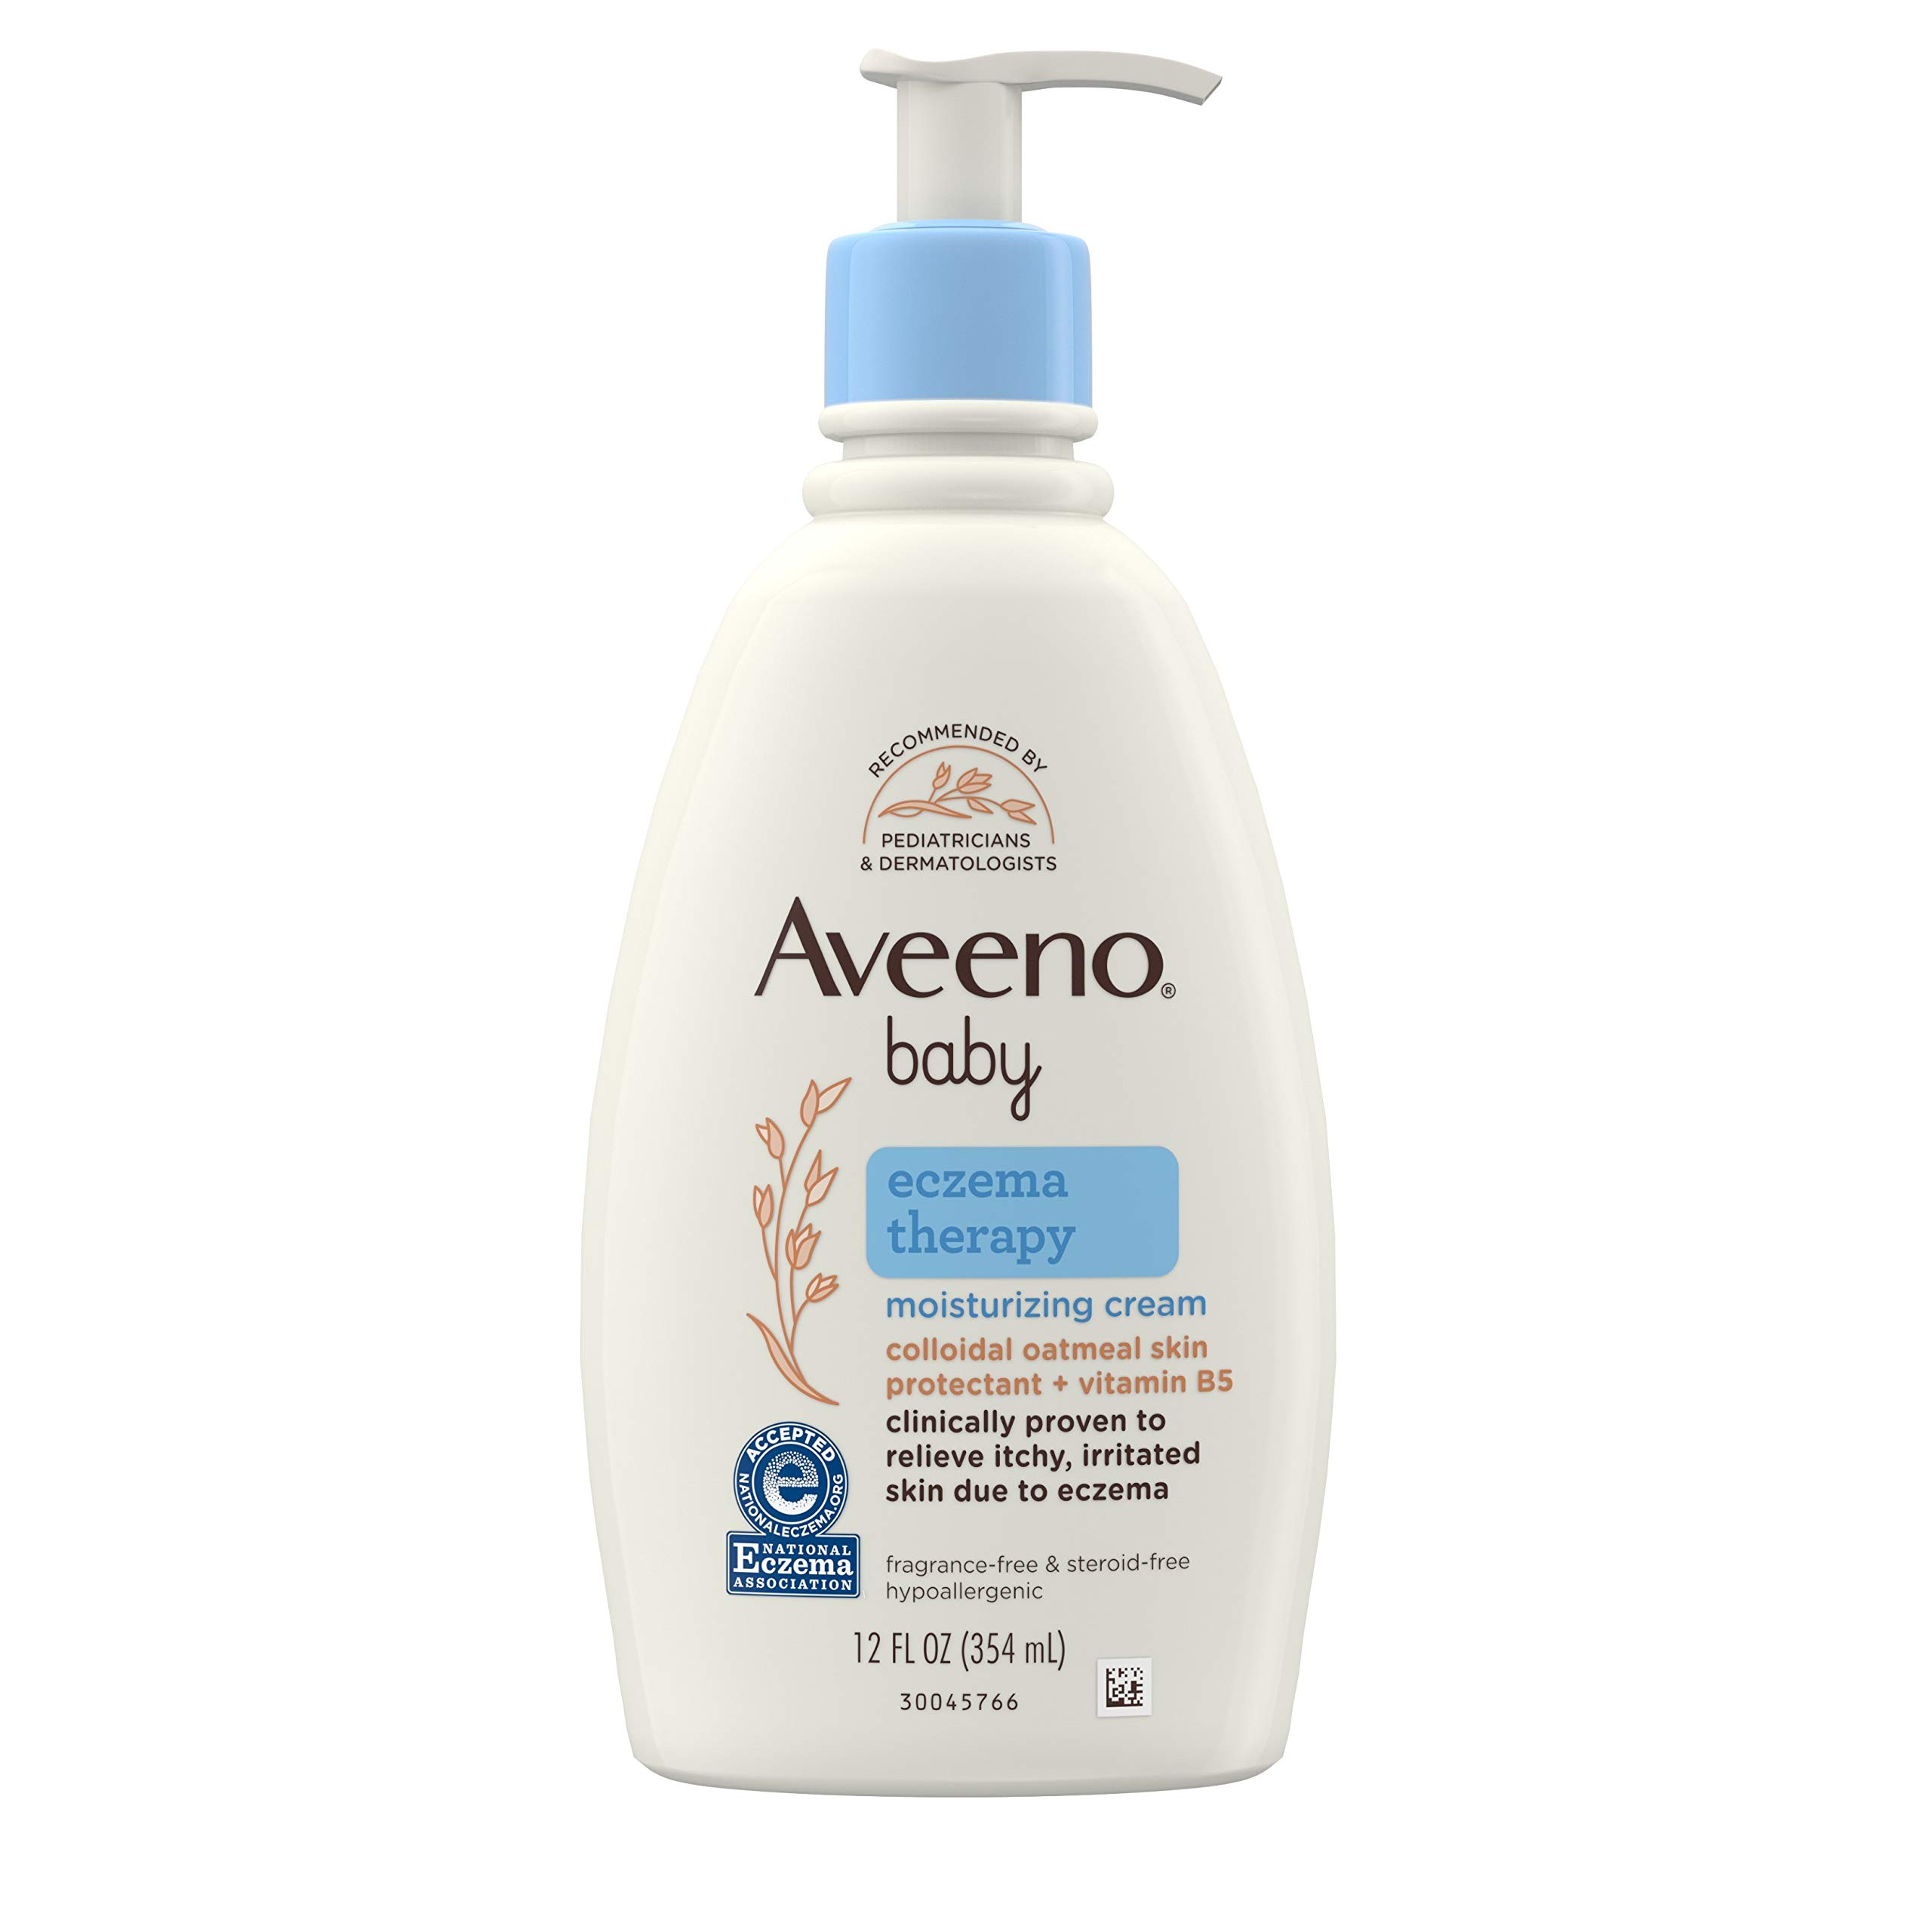 Aveeno Baby Eczema Therapy Moisturizing Cream, Natural Colloidal Oatmeal & Vitamin B5, Baby Eczema Cream for Dry, Itchy, Irritated Skin Due to Eczema, Paraben- & Steroid-Free, 12 fl. oz